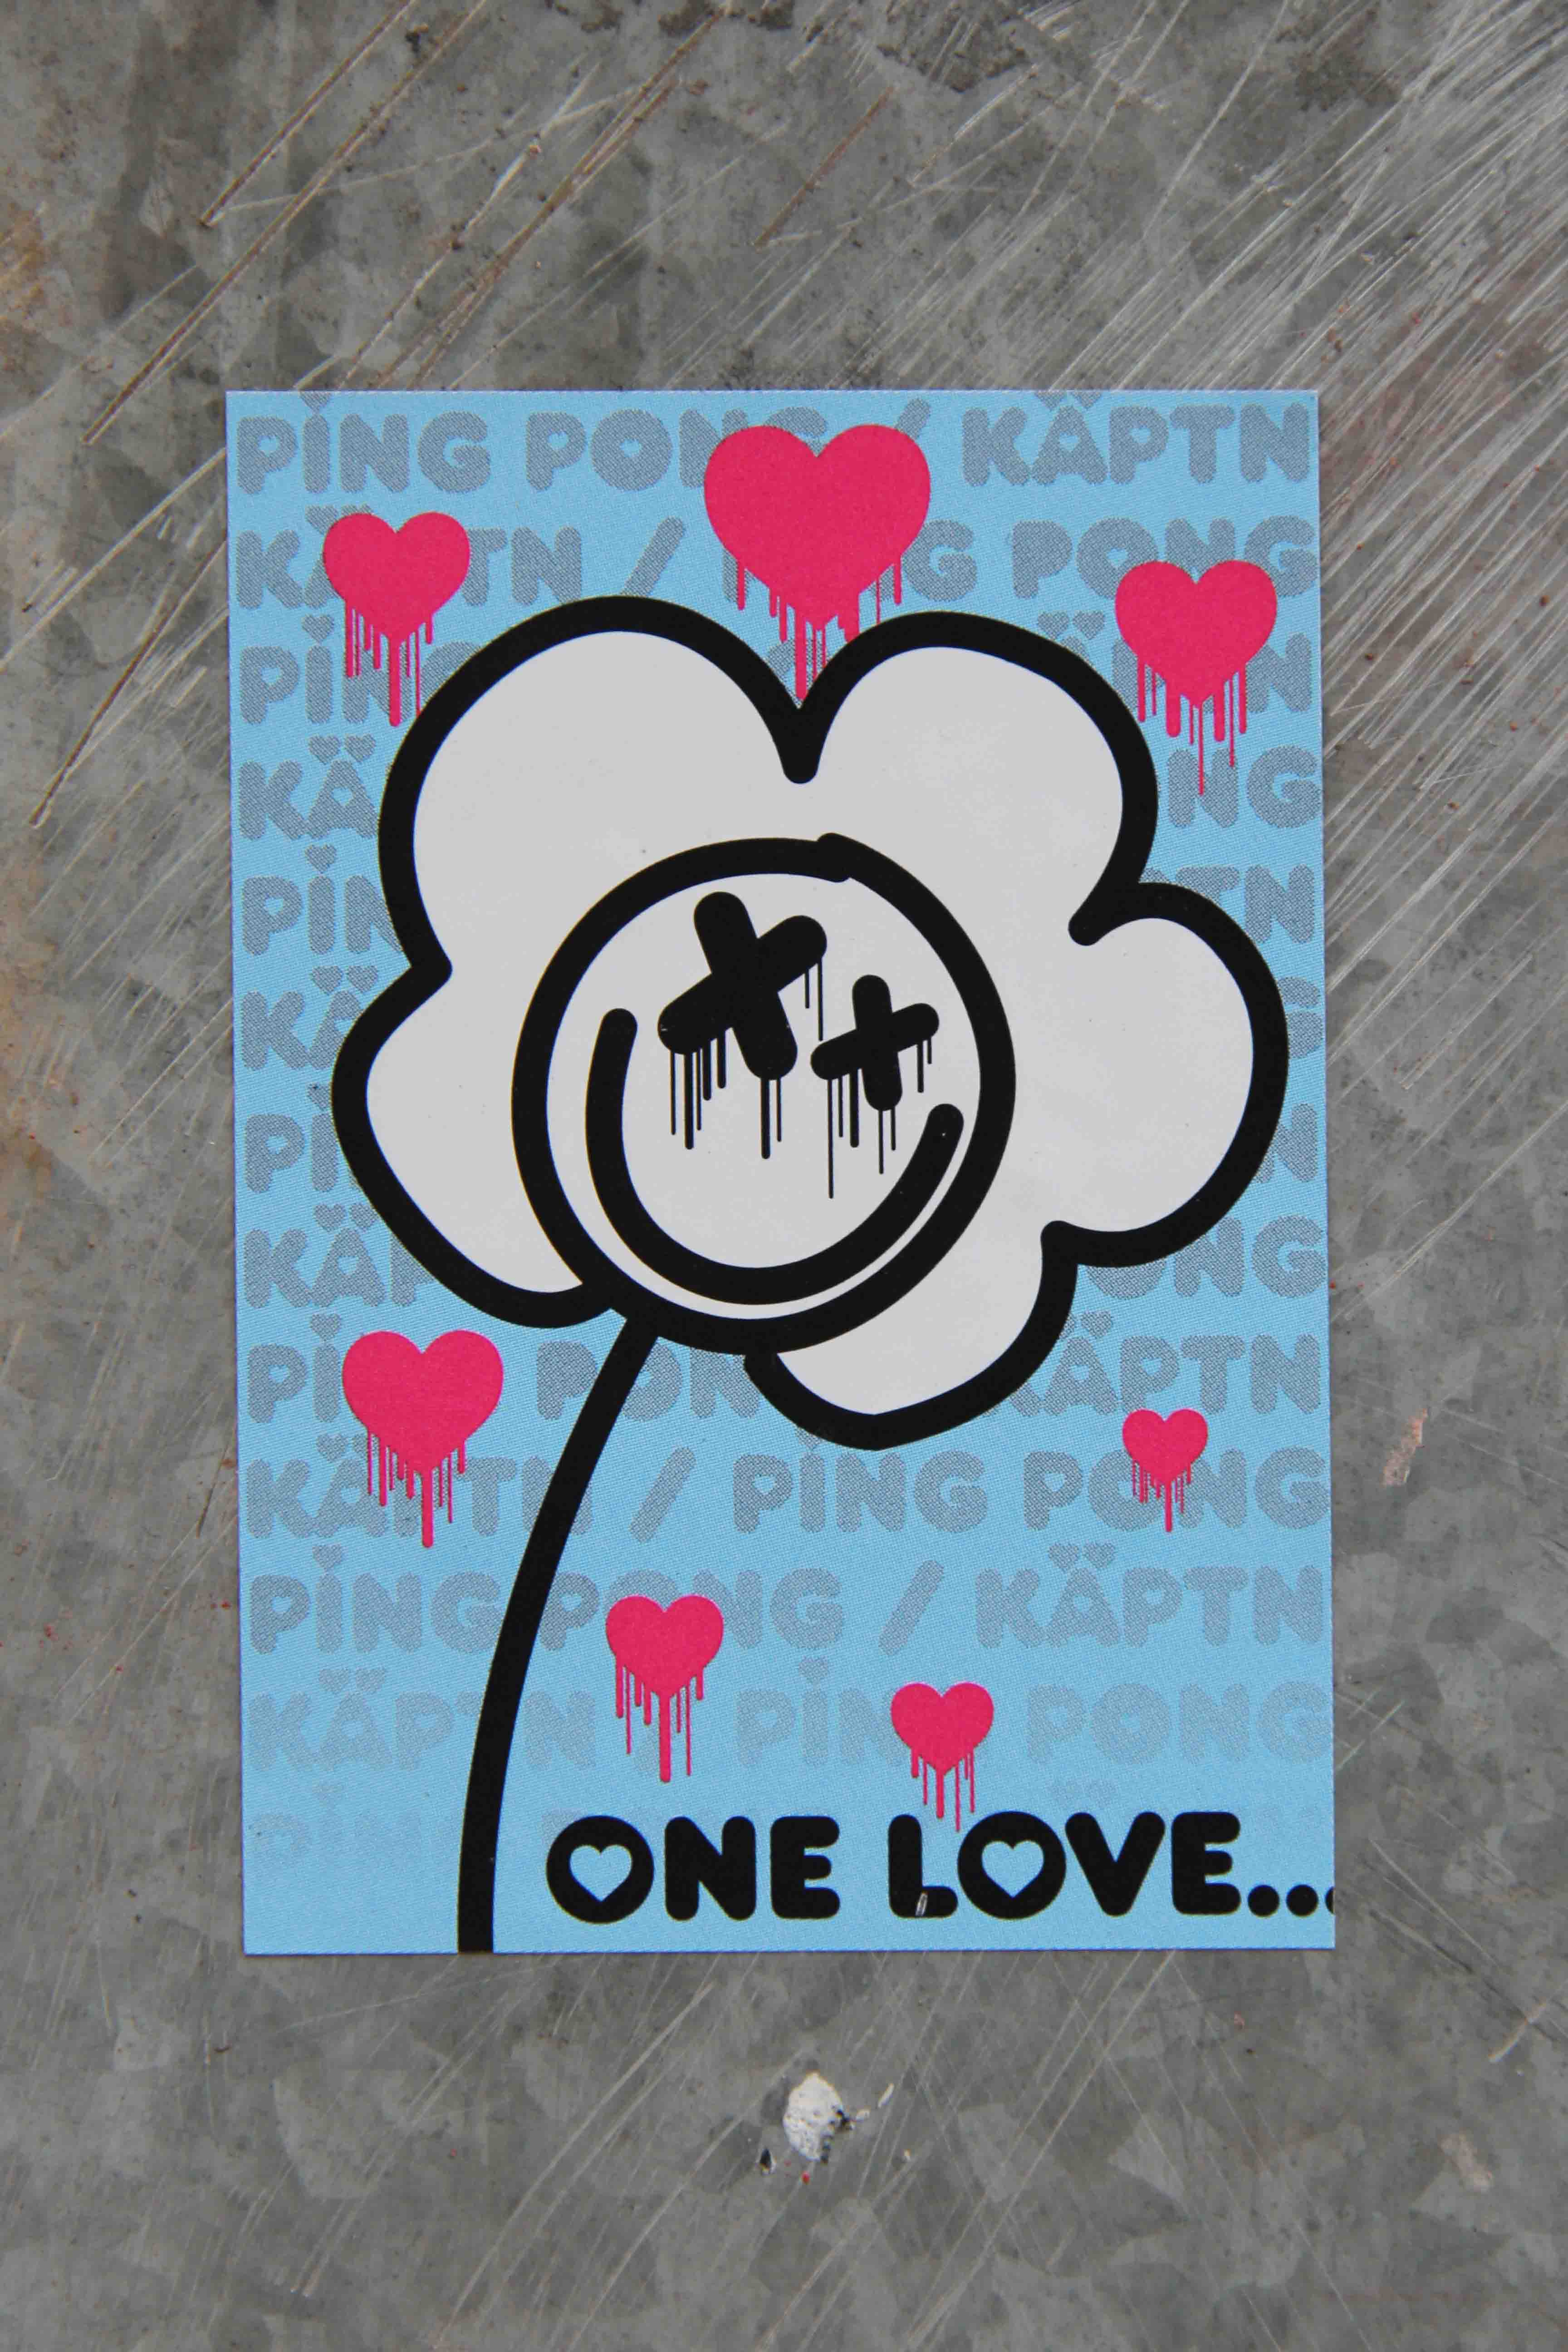 One Love - Sticker Street Art by Ping Pong x Käptn